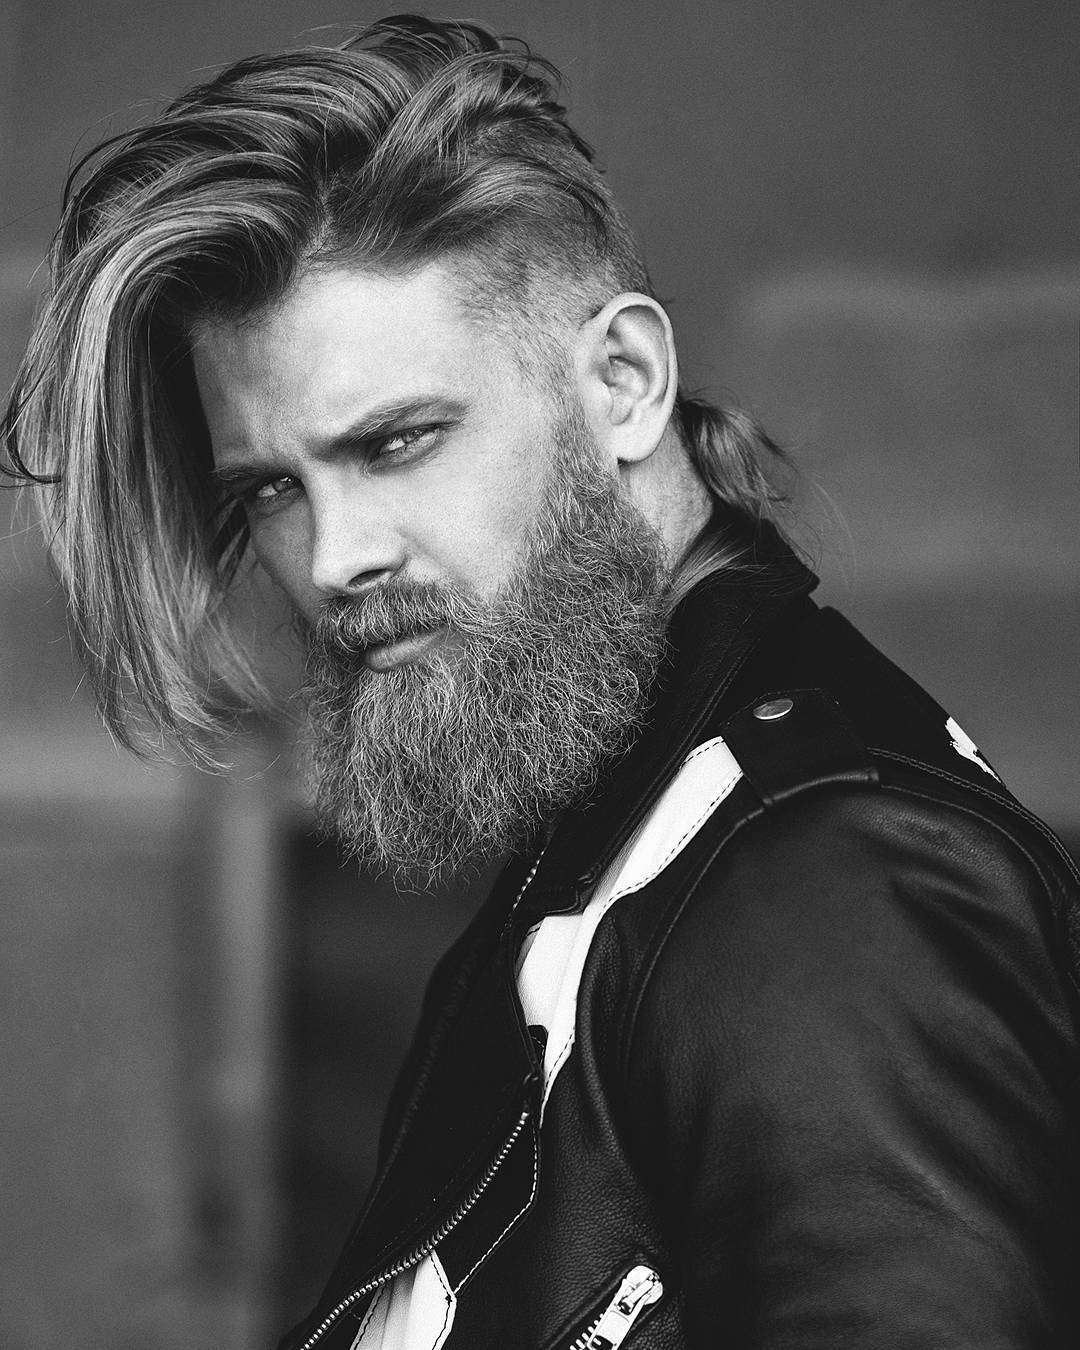 Viking hairstyles: Shot of man with full beard with long top hairstyle with low fade